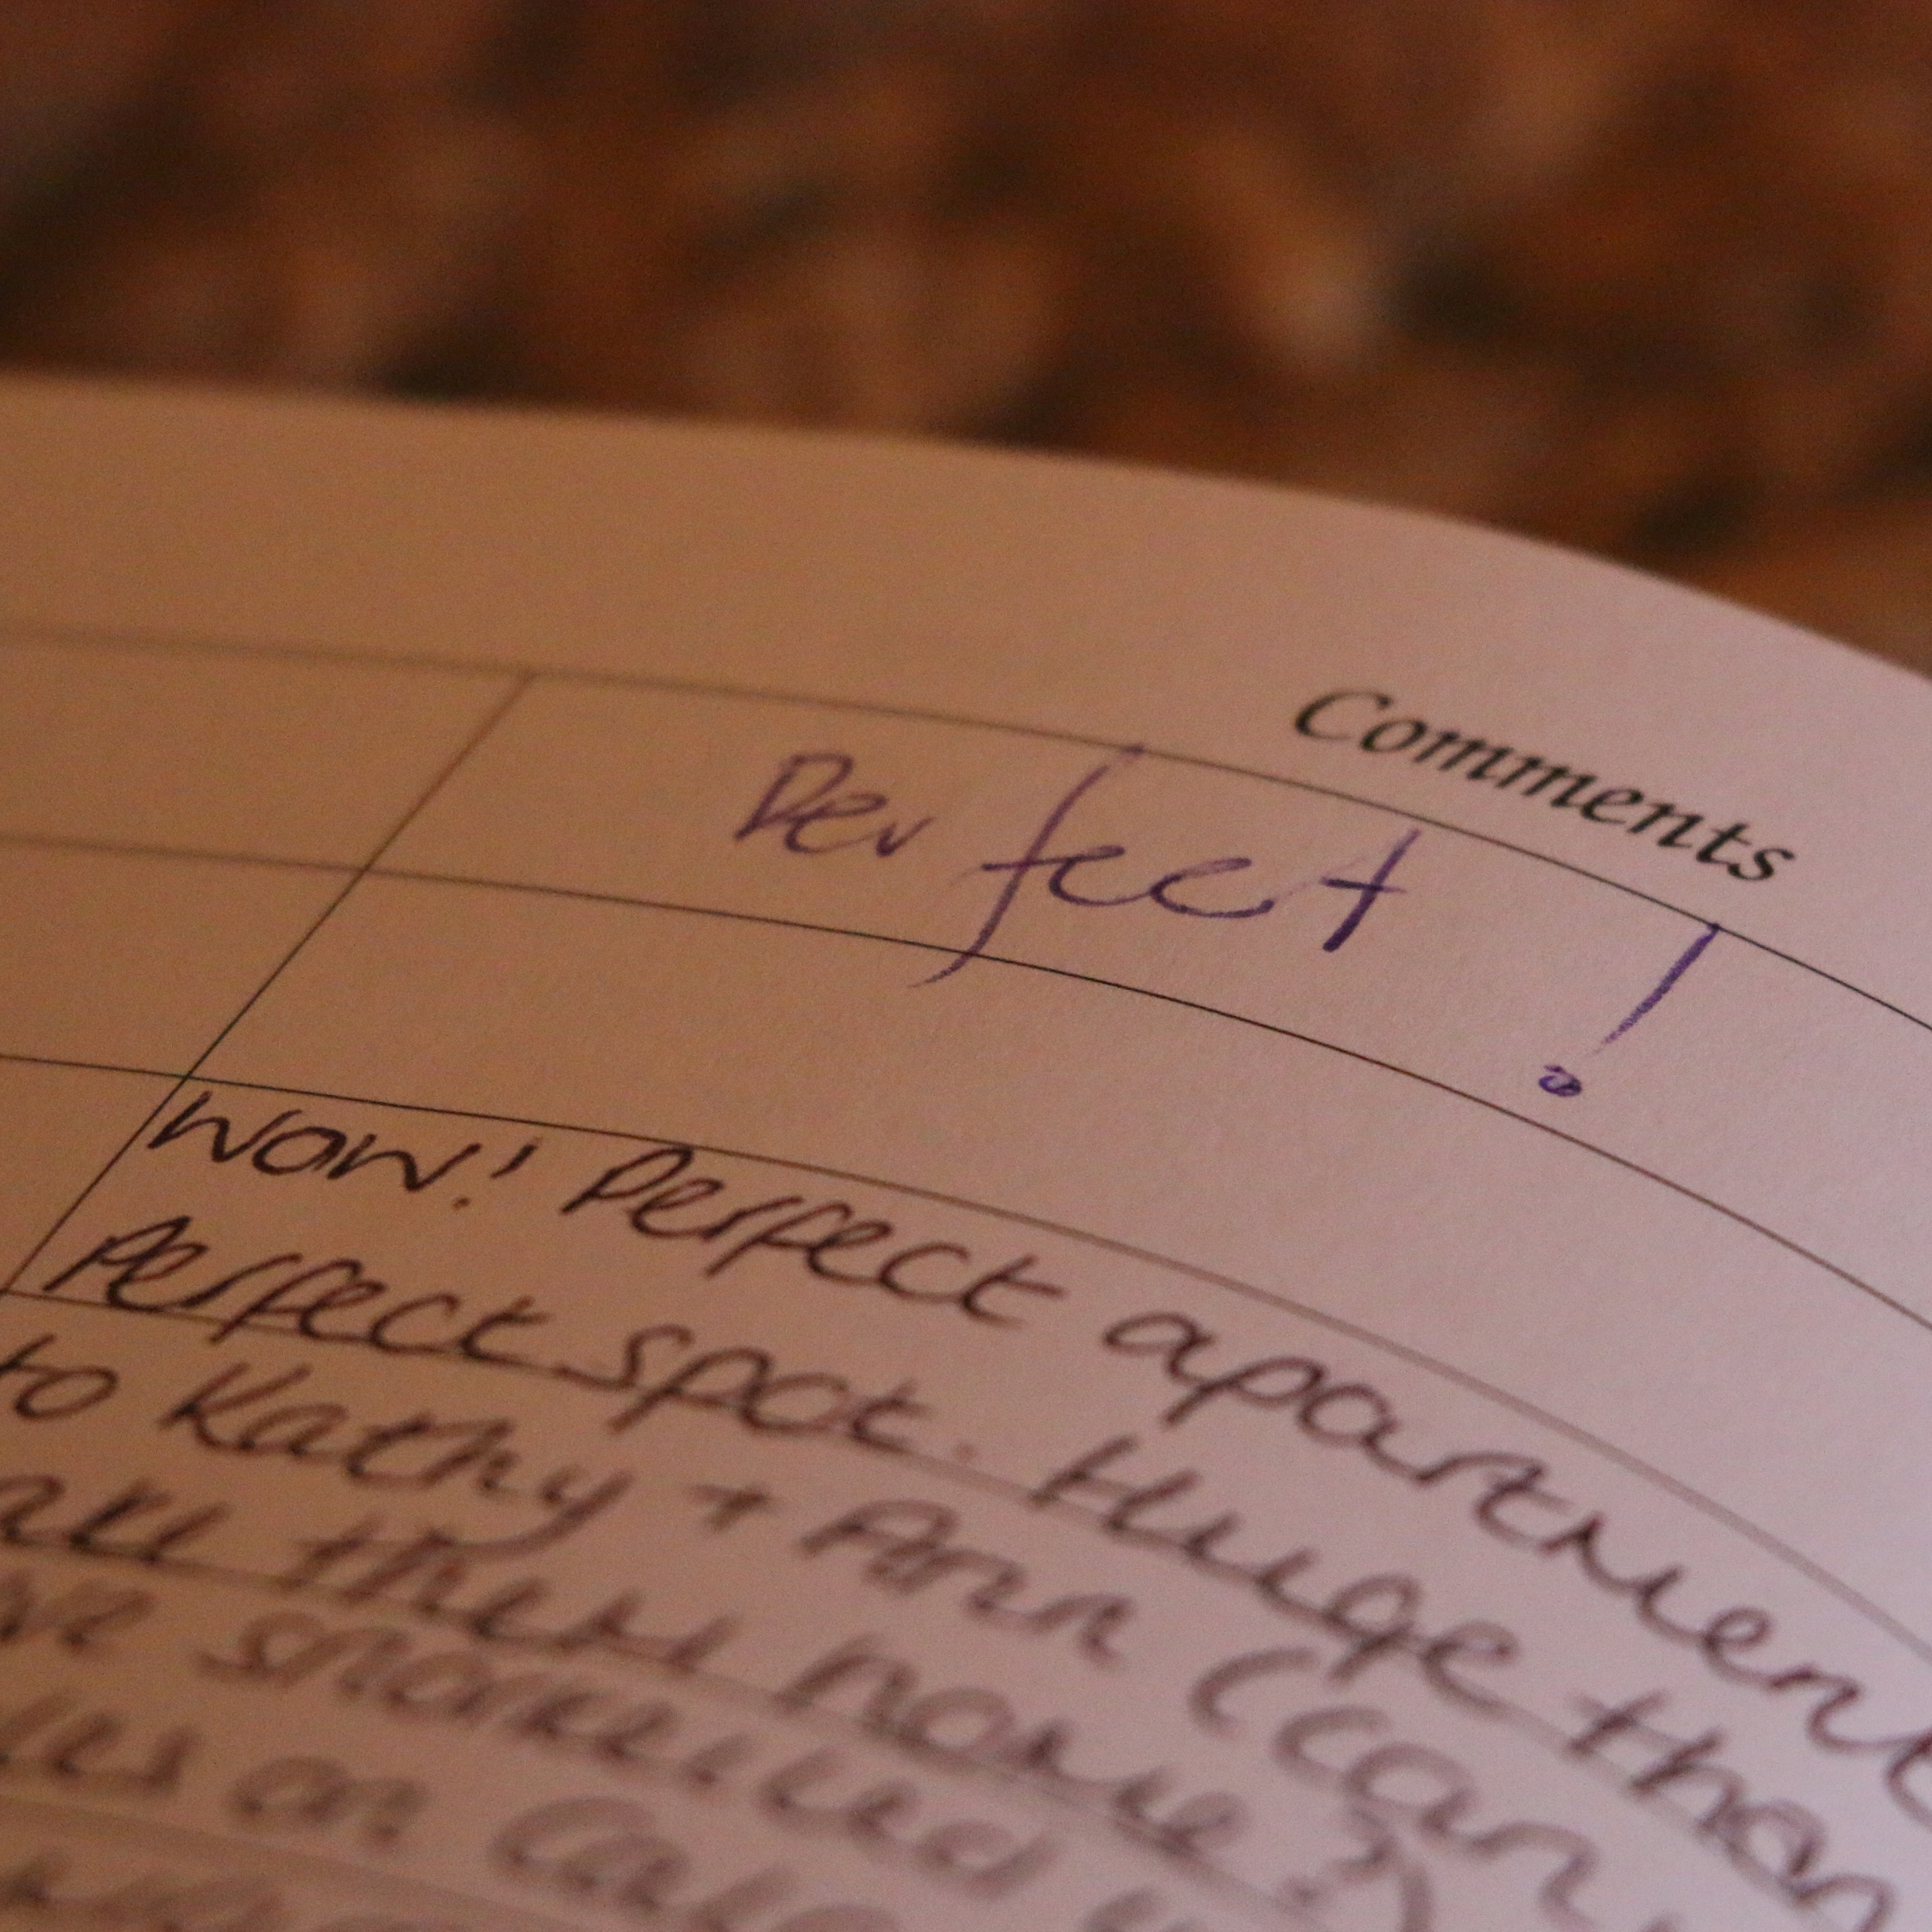 Some (genuine!) comments in our guest book